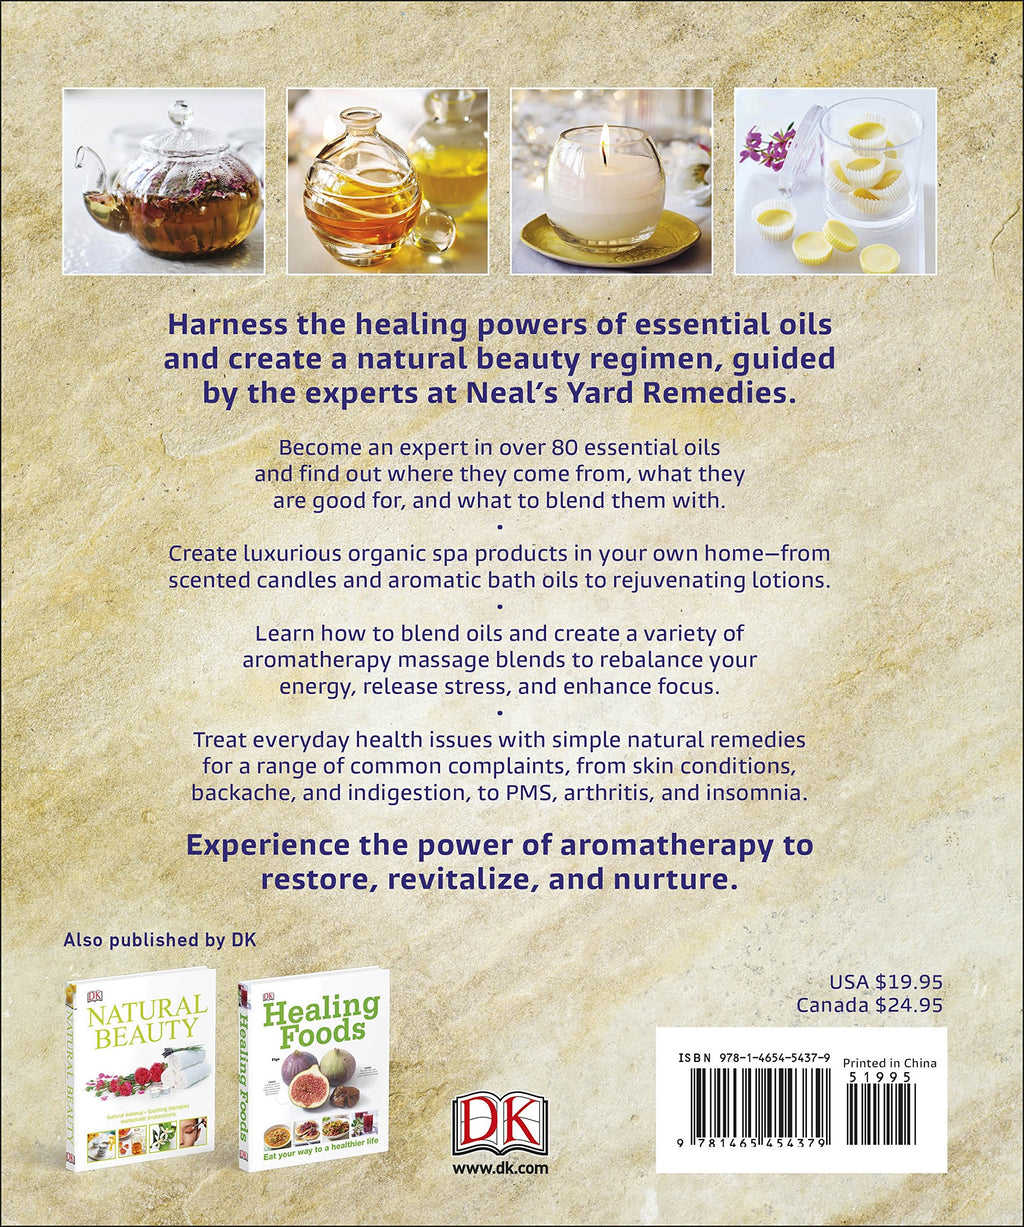 Essential Oils by Susan Curtis and Fran Johnson (DK Books)